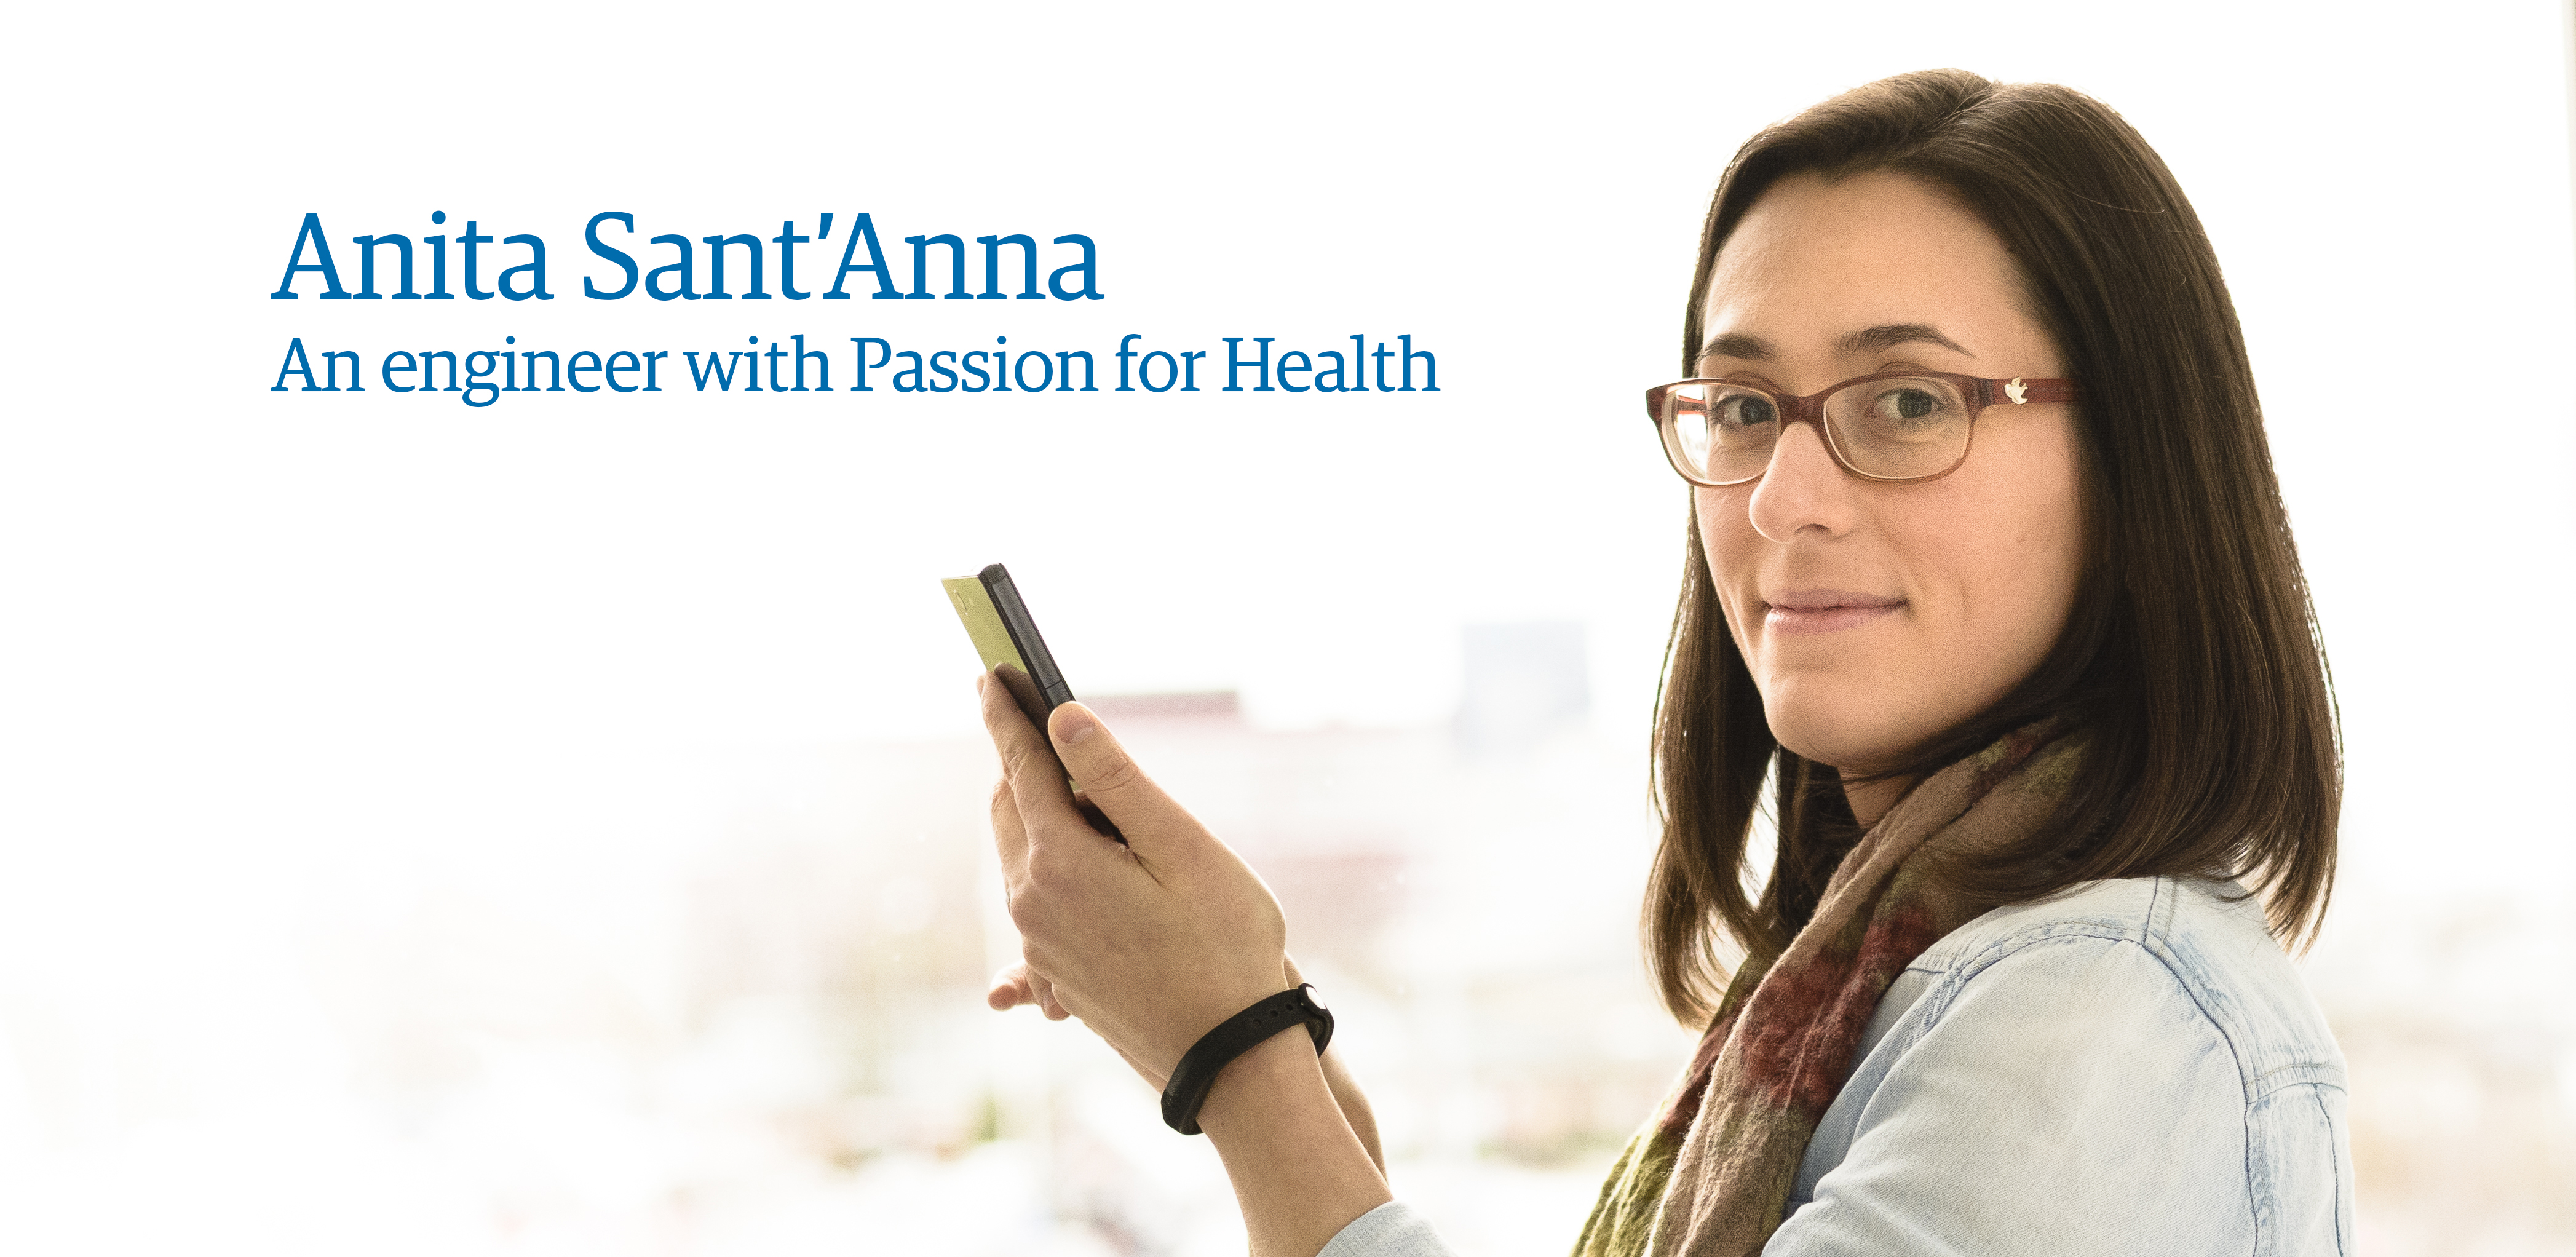 Meet researcher Anita Sant'Anna. An engineer with a passion for health